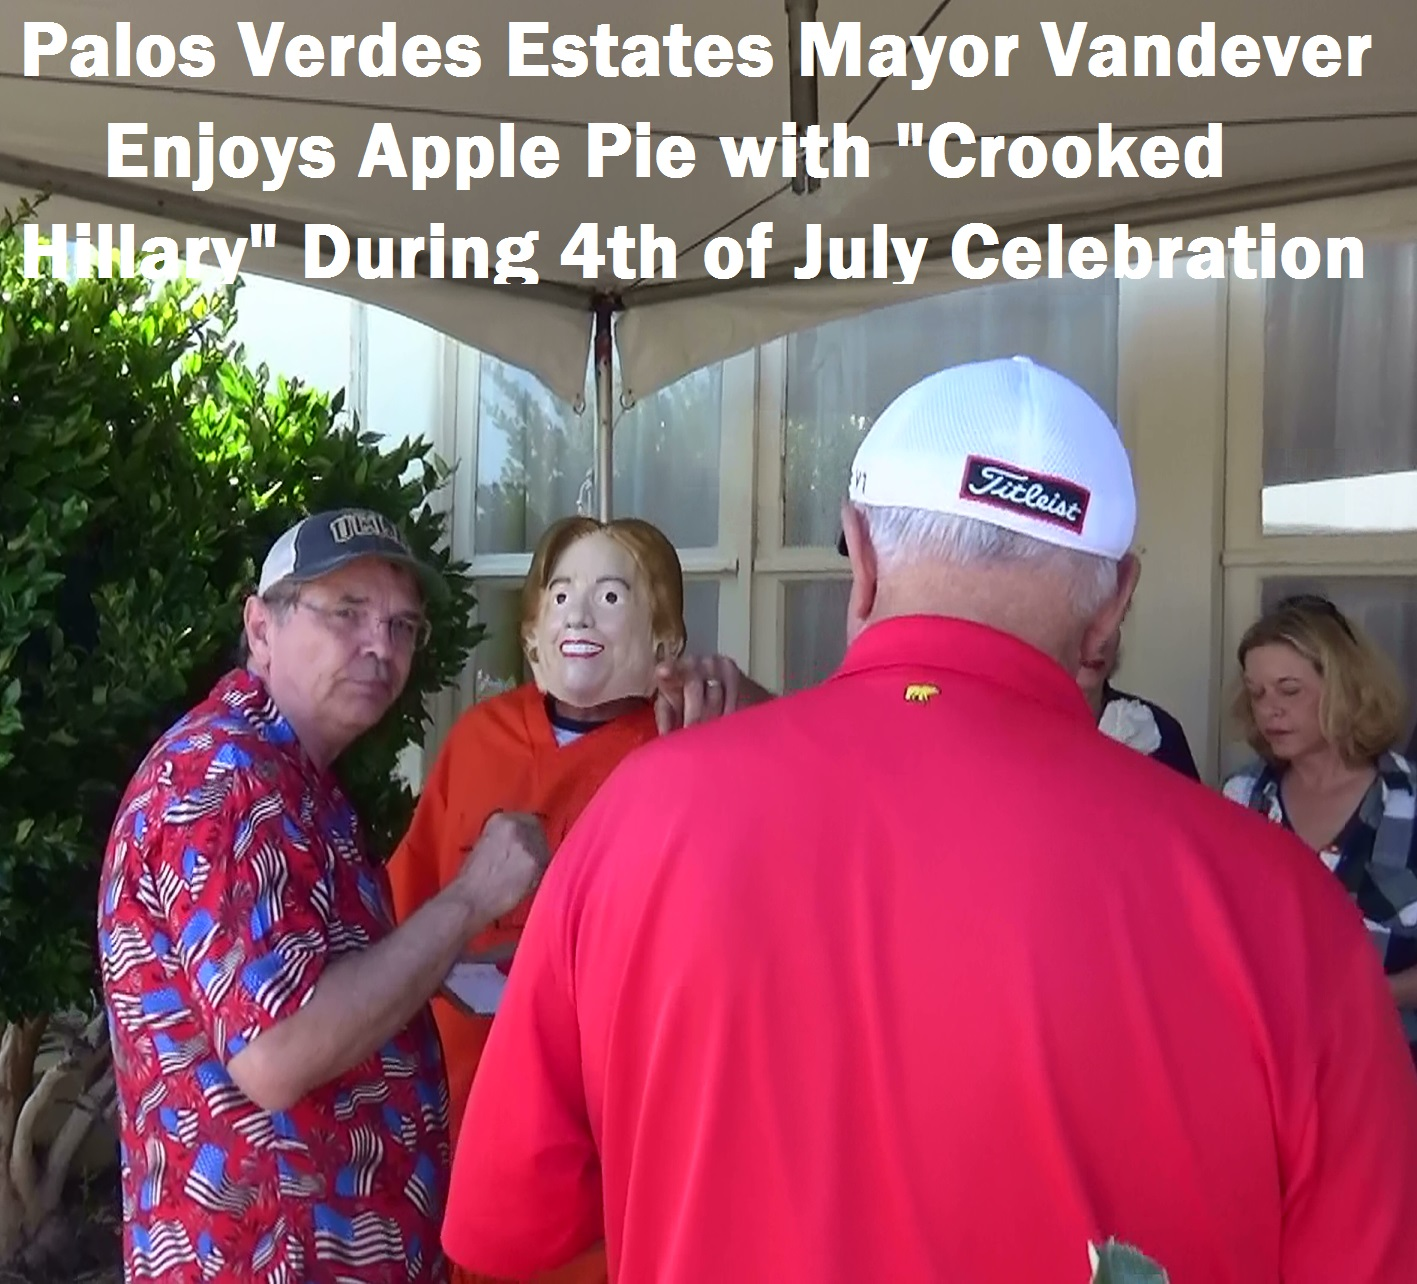 PVE 4th of July Hillary Mayor Vandever 07-04-2017 - Cropped & Annotated